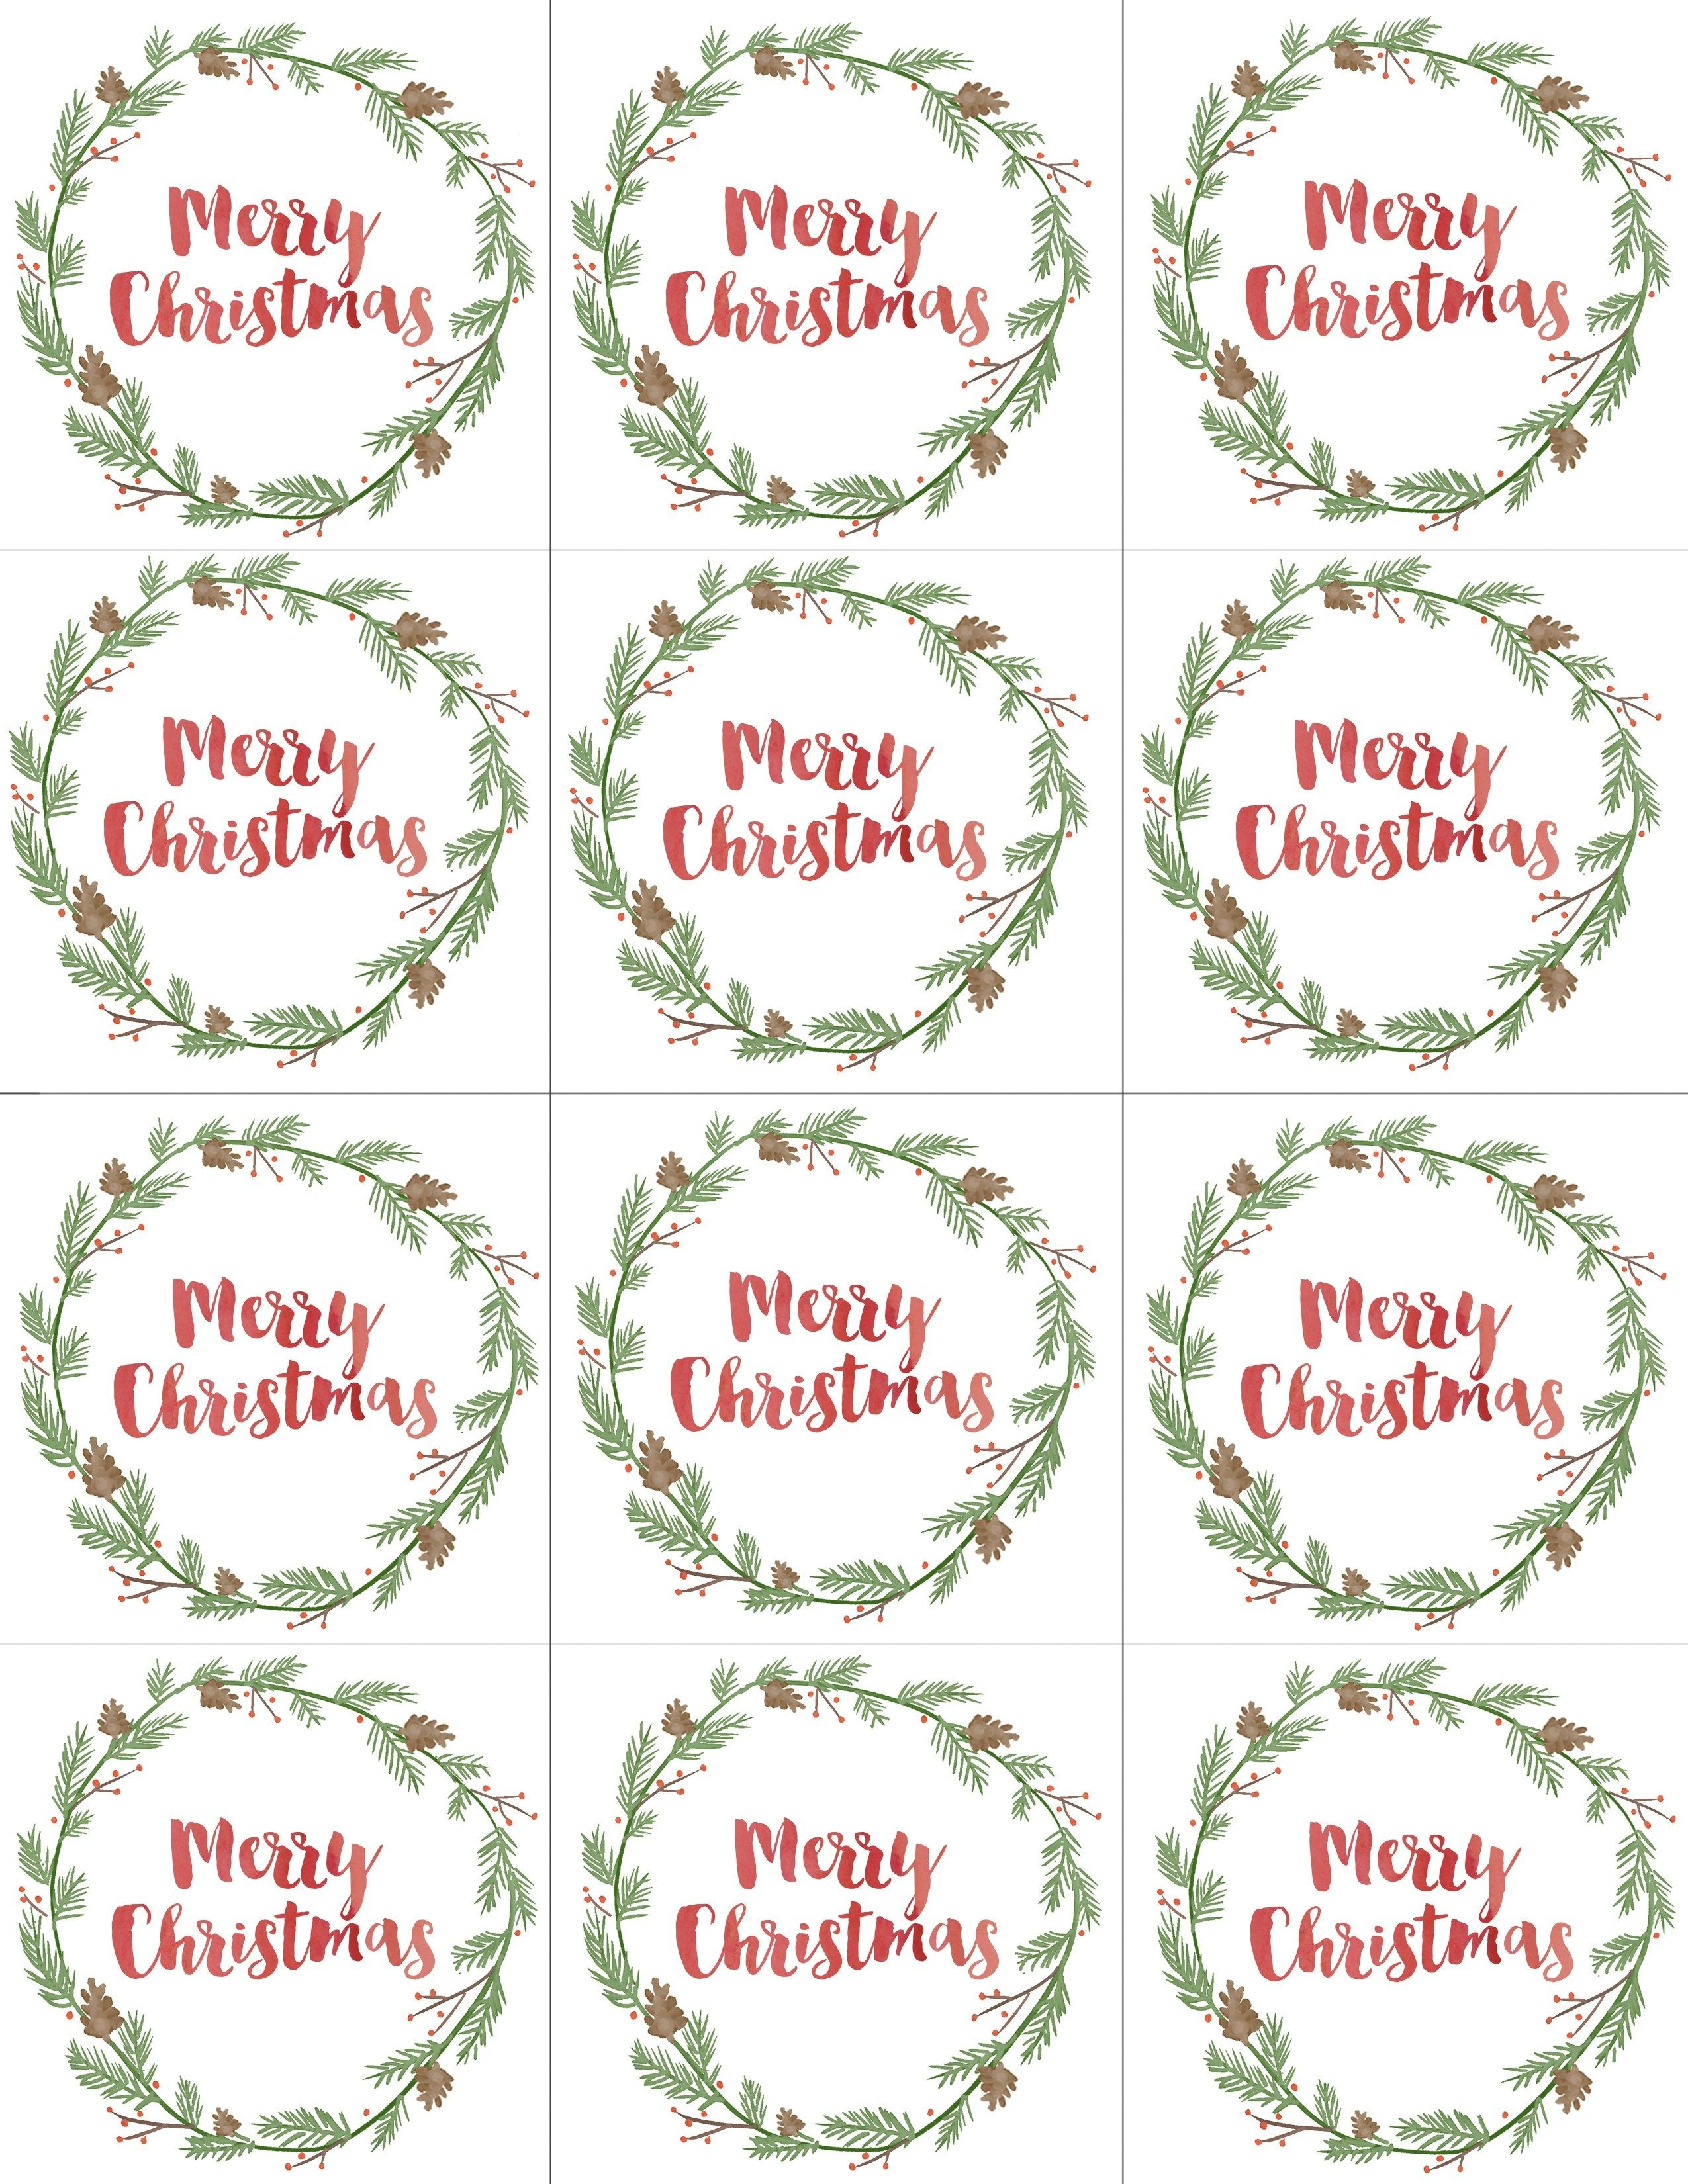 Hand Painted Gift Tags Free Printable | Christmas | Christmas Gift - Free Printable Customizable Gift Tags